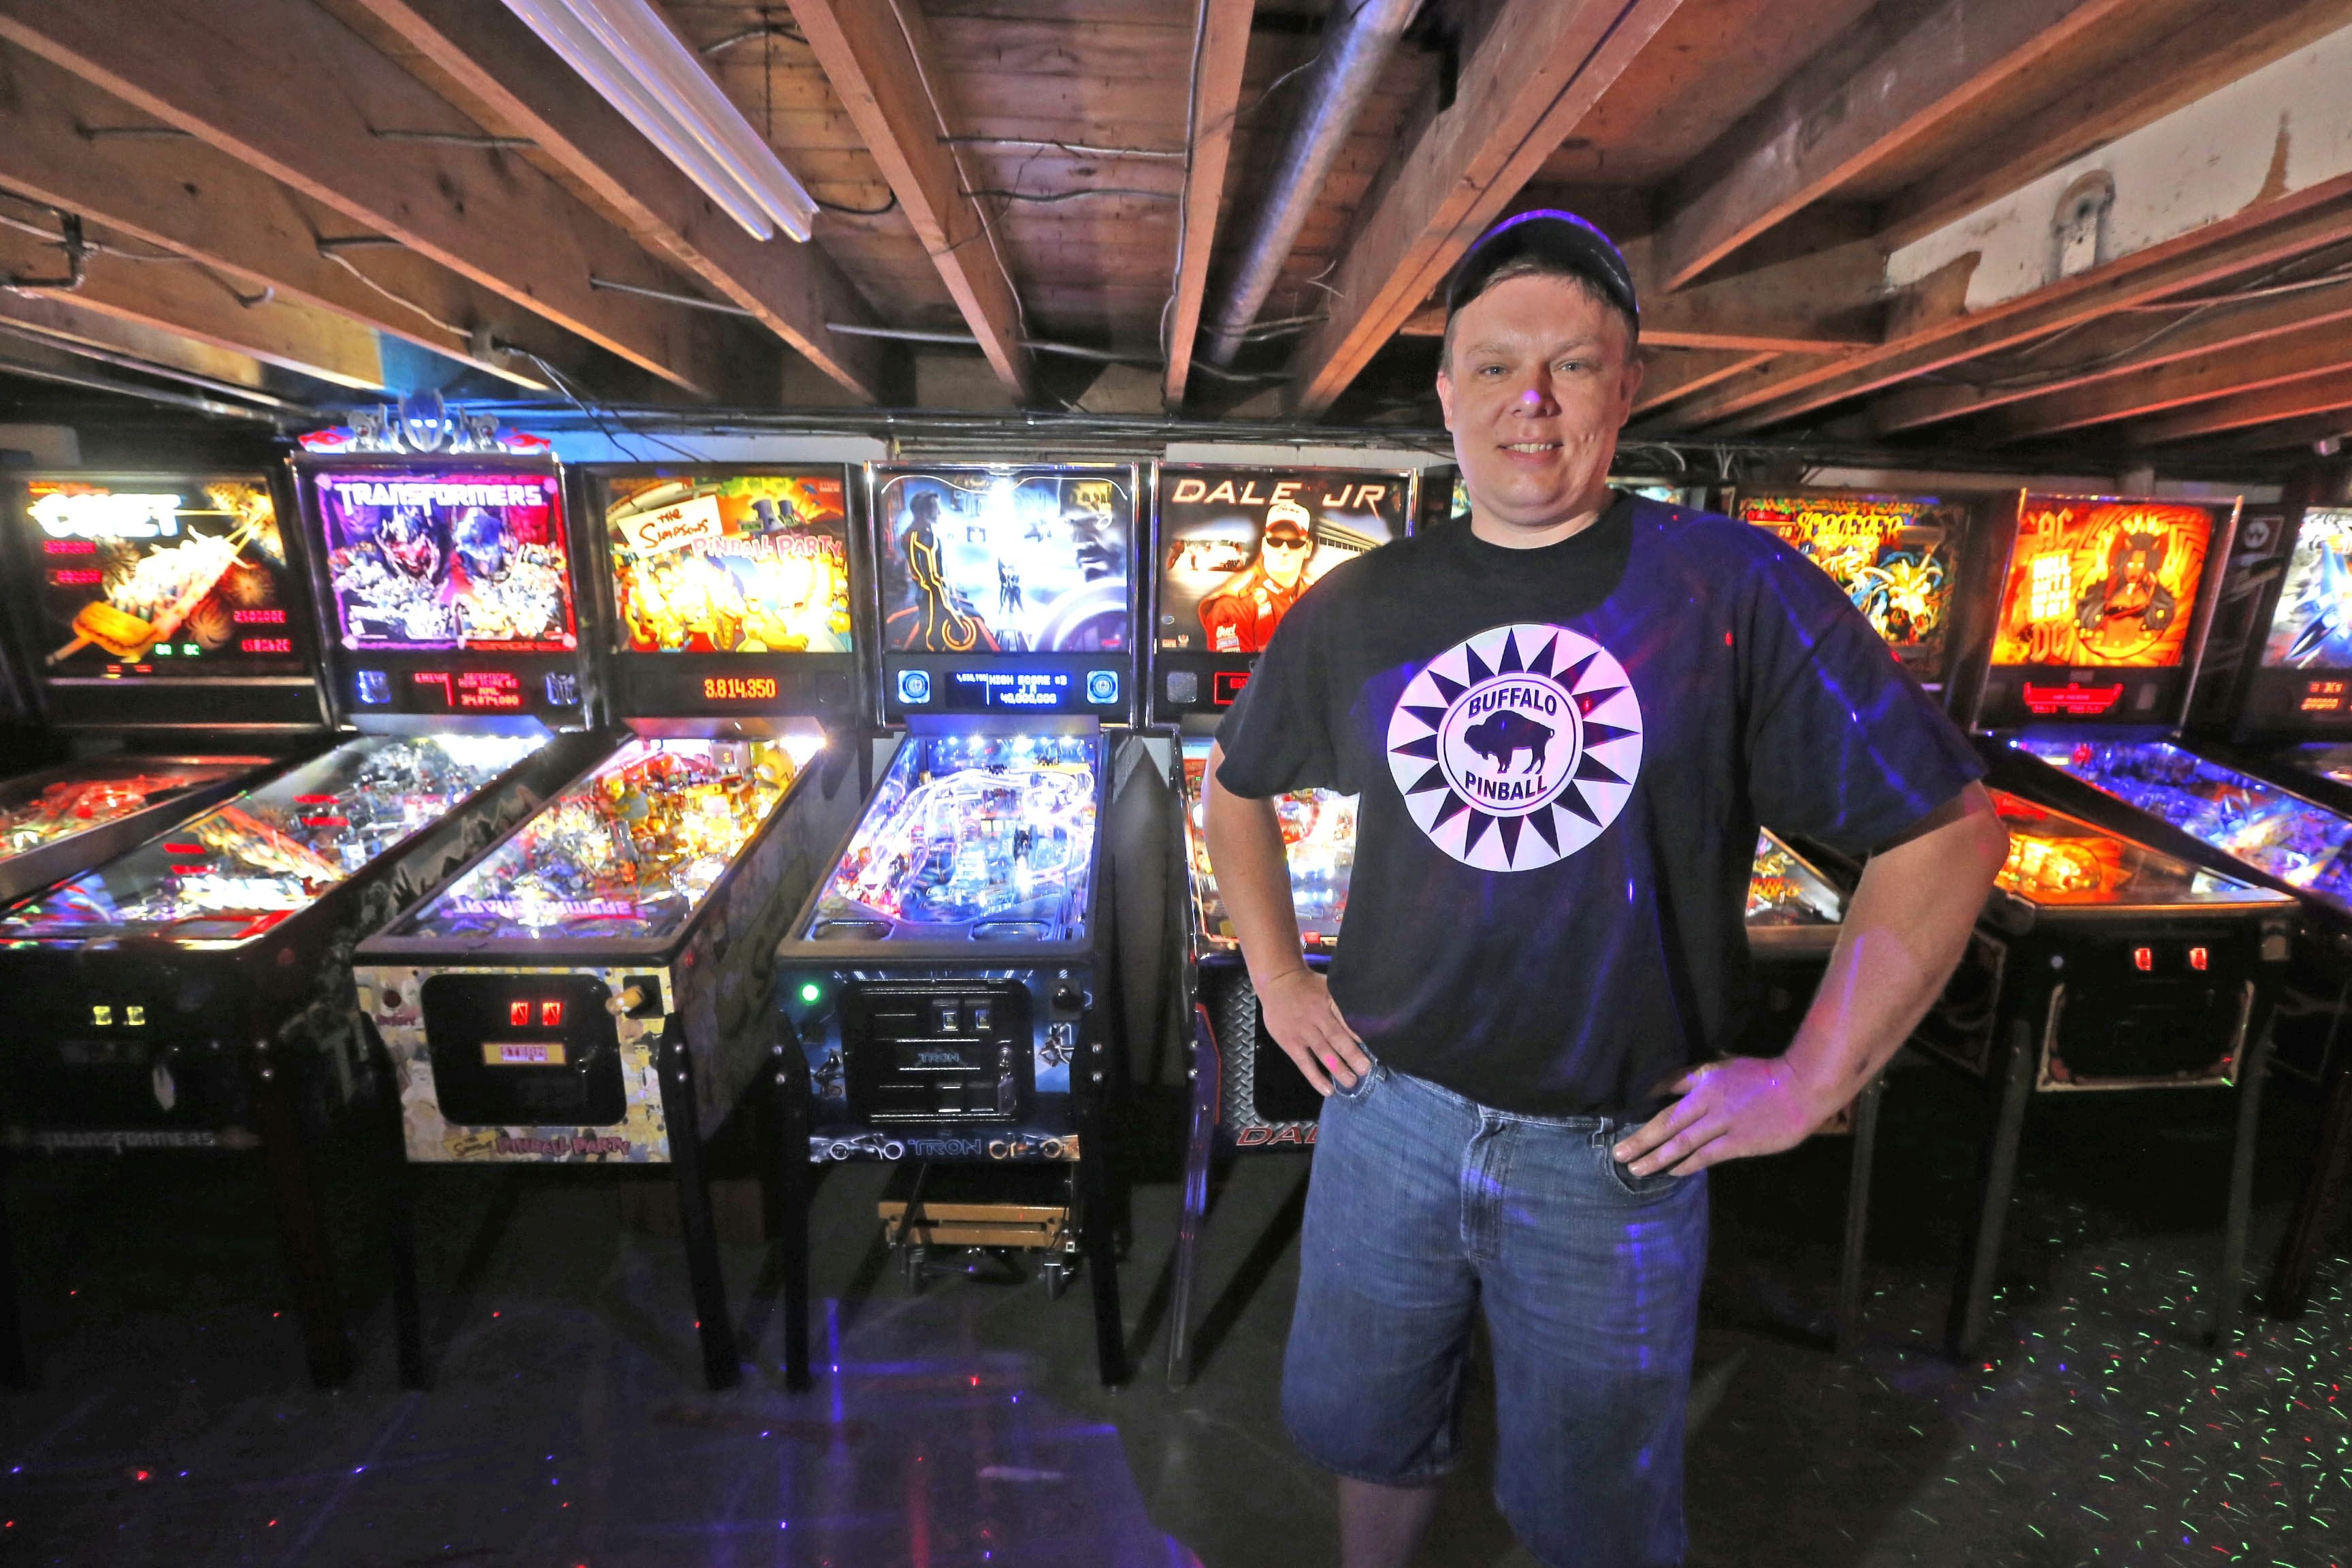 These machines are just a fraction of the pinball collection housed in the Strykersville basement of collector John Barsh.